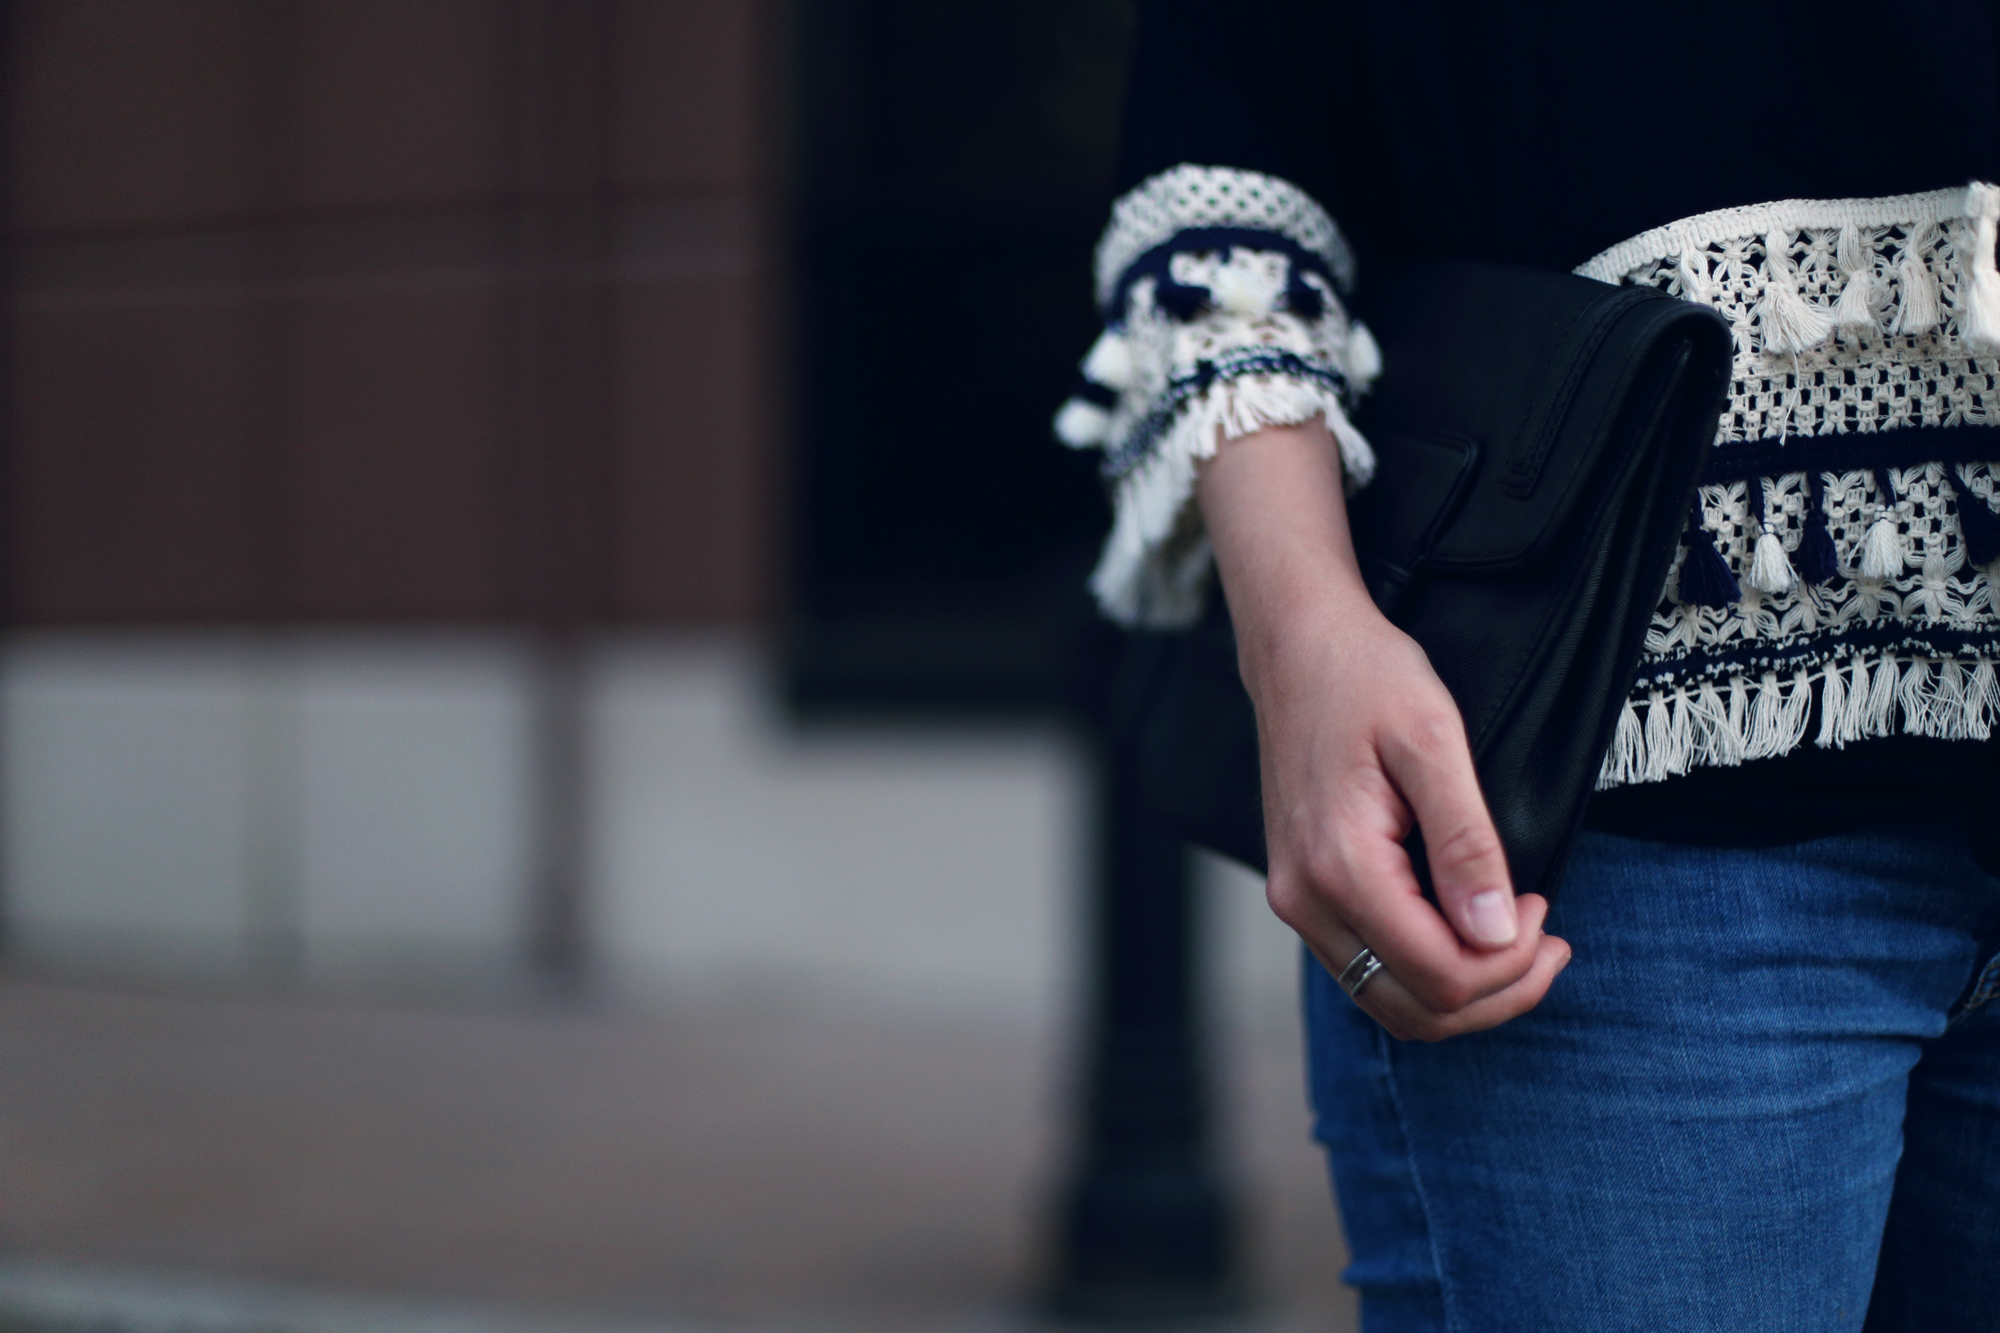 Minimalist outfit details: tassels, oversized black clutch, and skinny jeans. #ootd